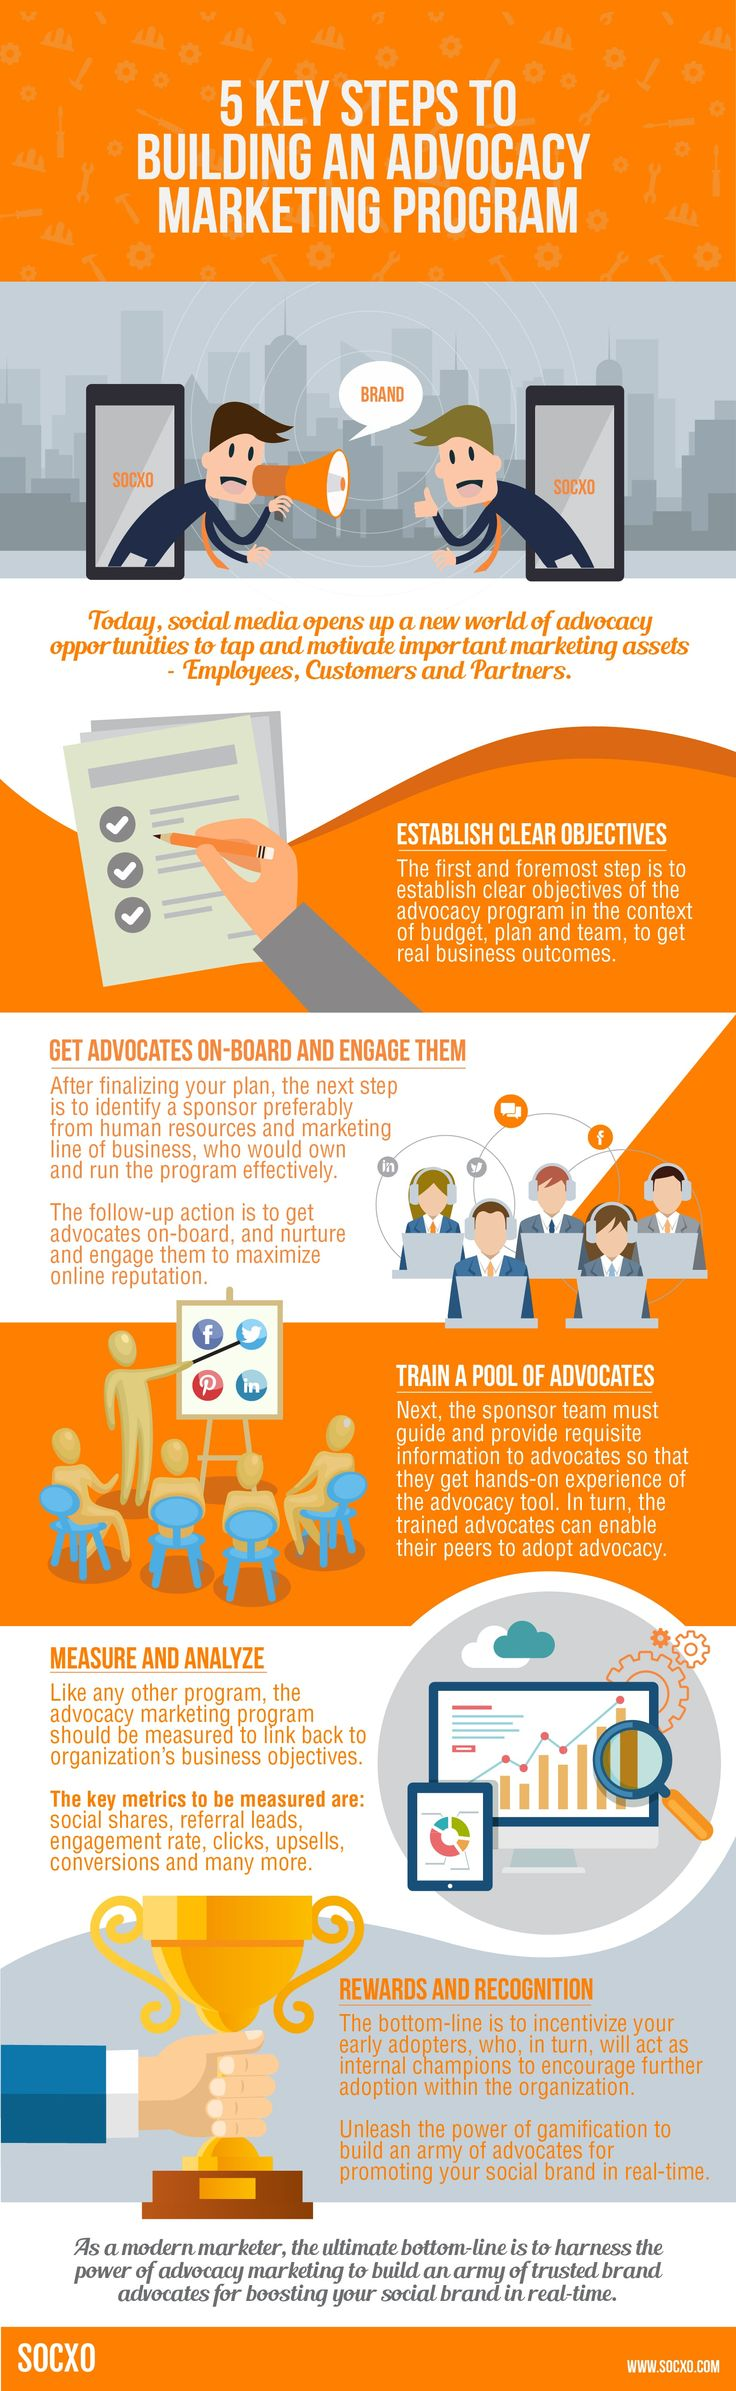 5 Key Steps to Building a successful advocacy marketing program for your organization. Click here www.socxo.com to learn more on brand advocacy marketing.